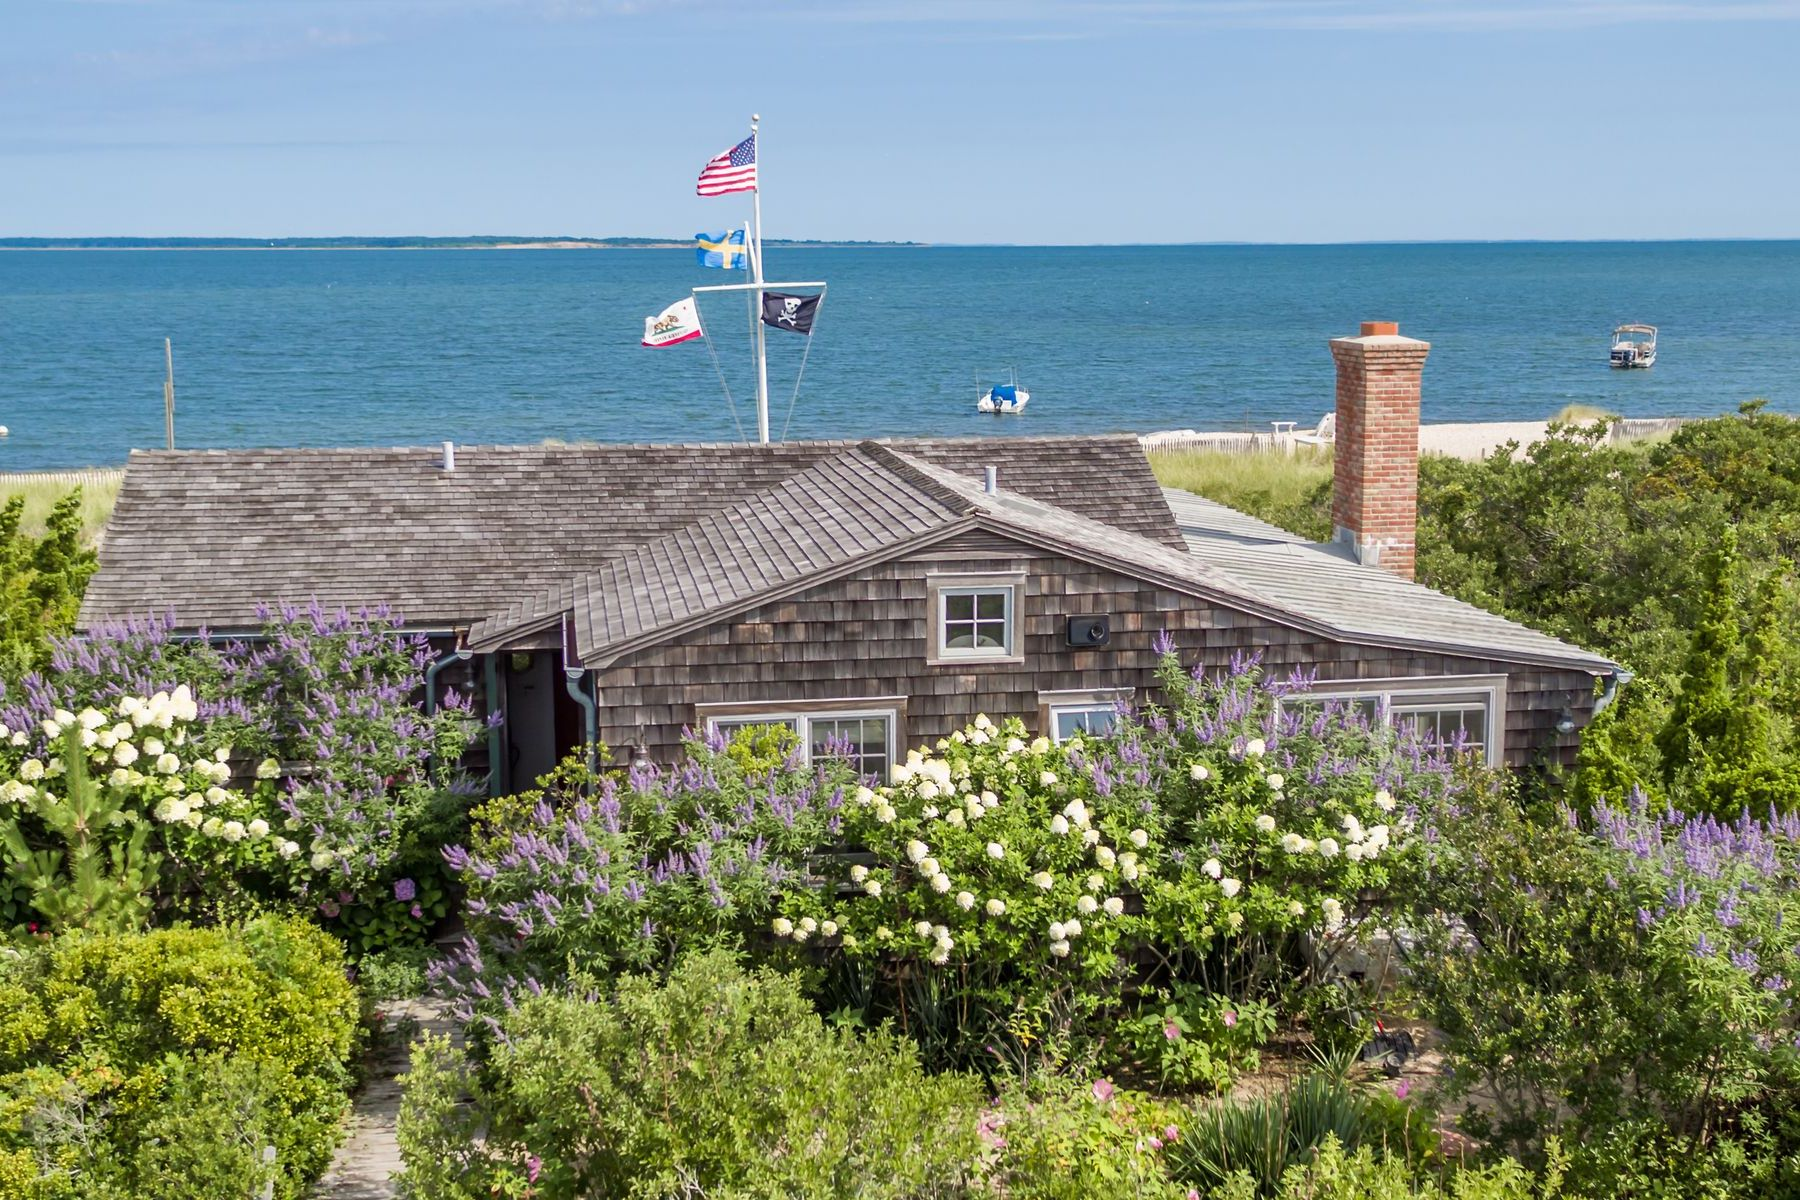 Single Family Homes for Sale at Idyllic Waterfront Cottage 204 Shore Road Amagansett, New York 11930 United States